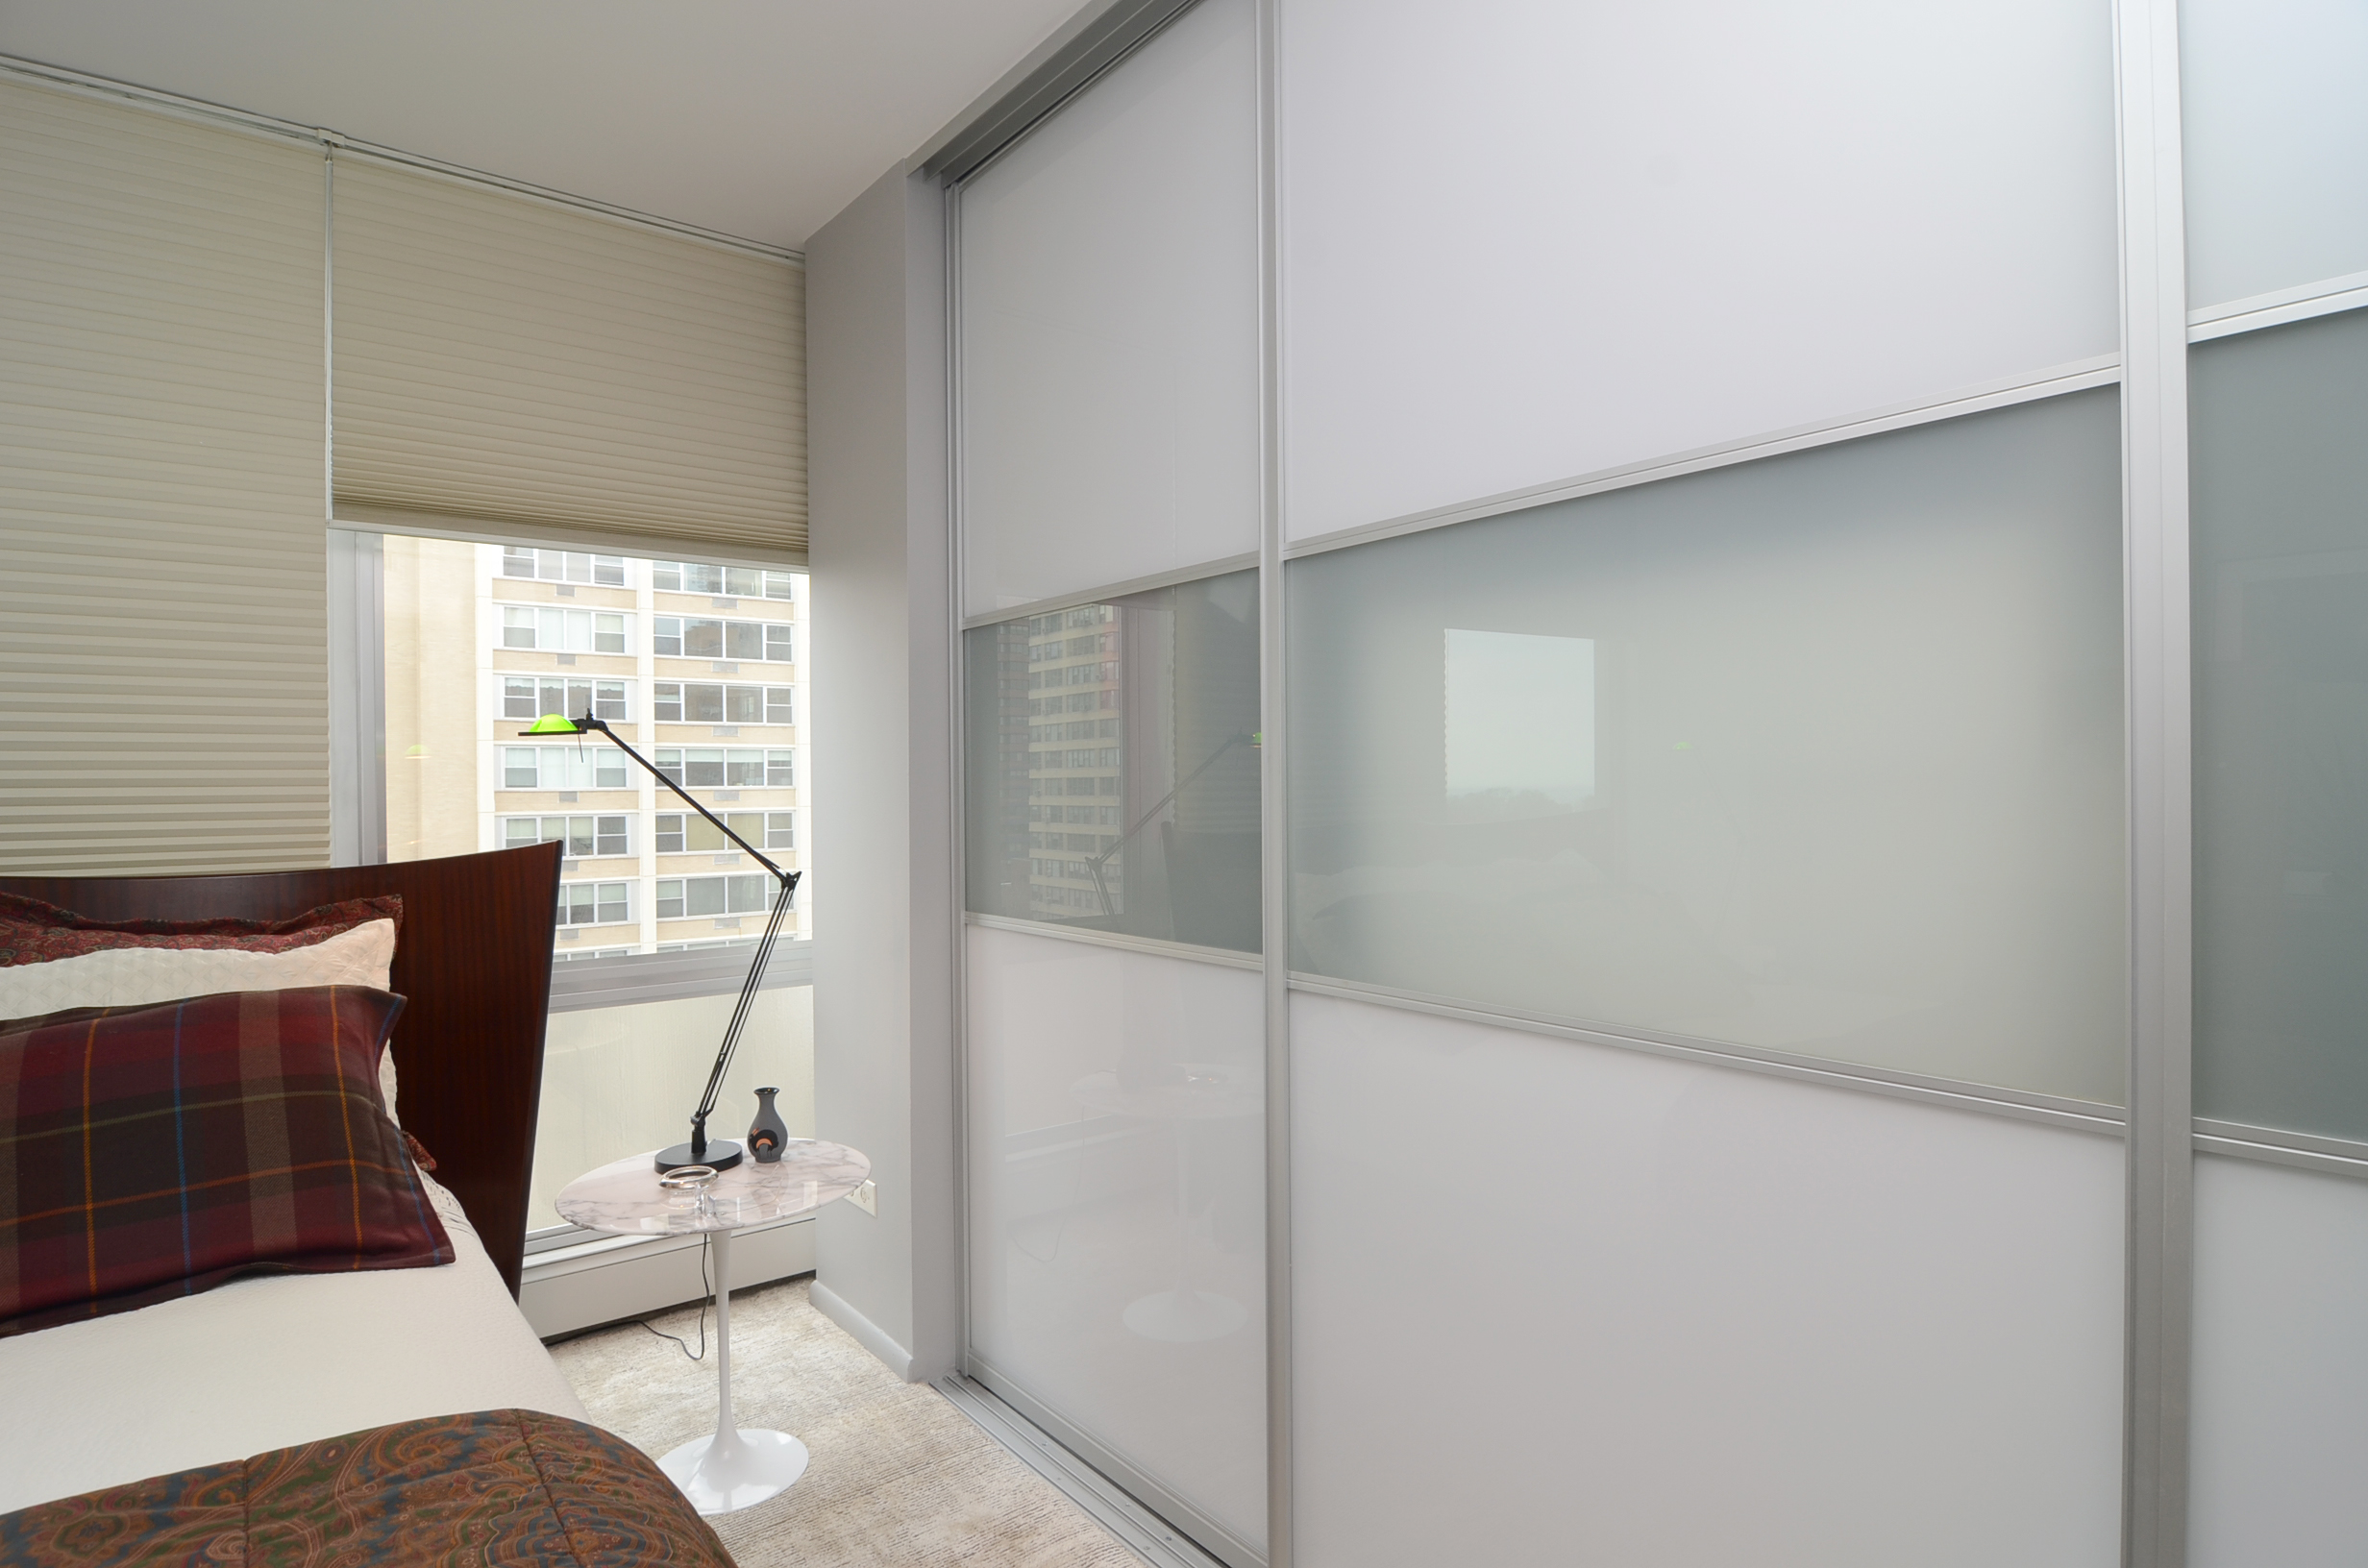 11 Dec Sliding Door Project At 339 W Barry